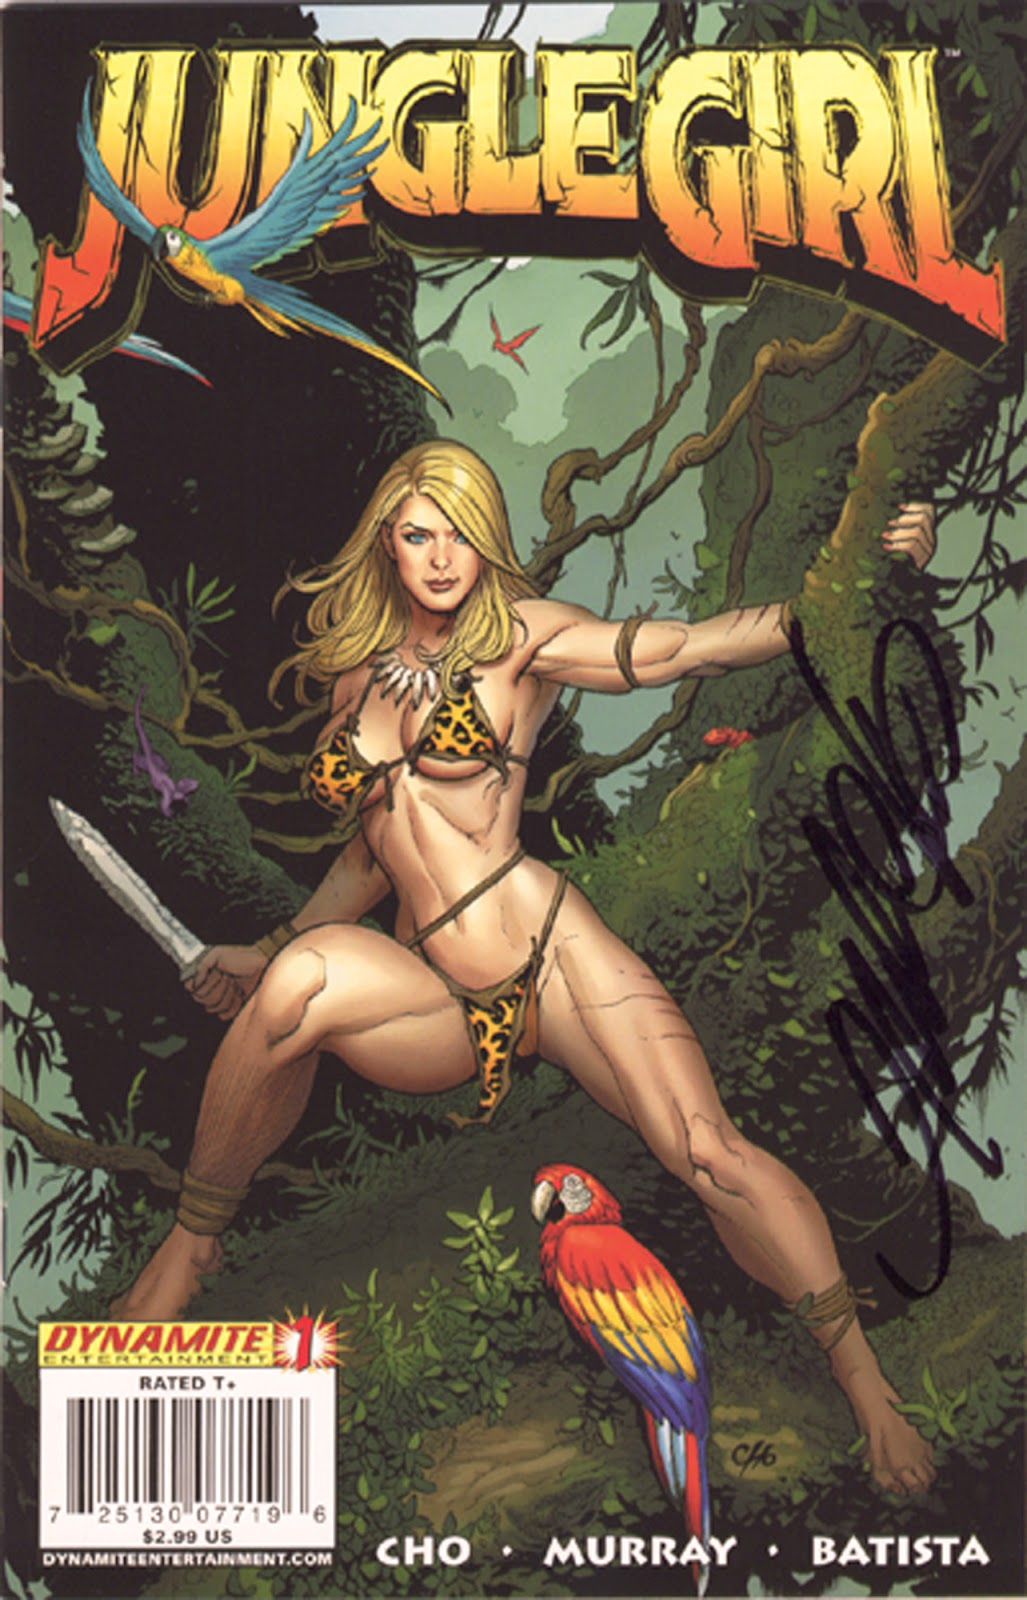 from Remy naked jungle leg girl